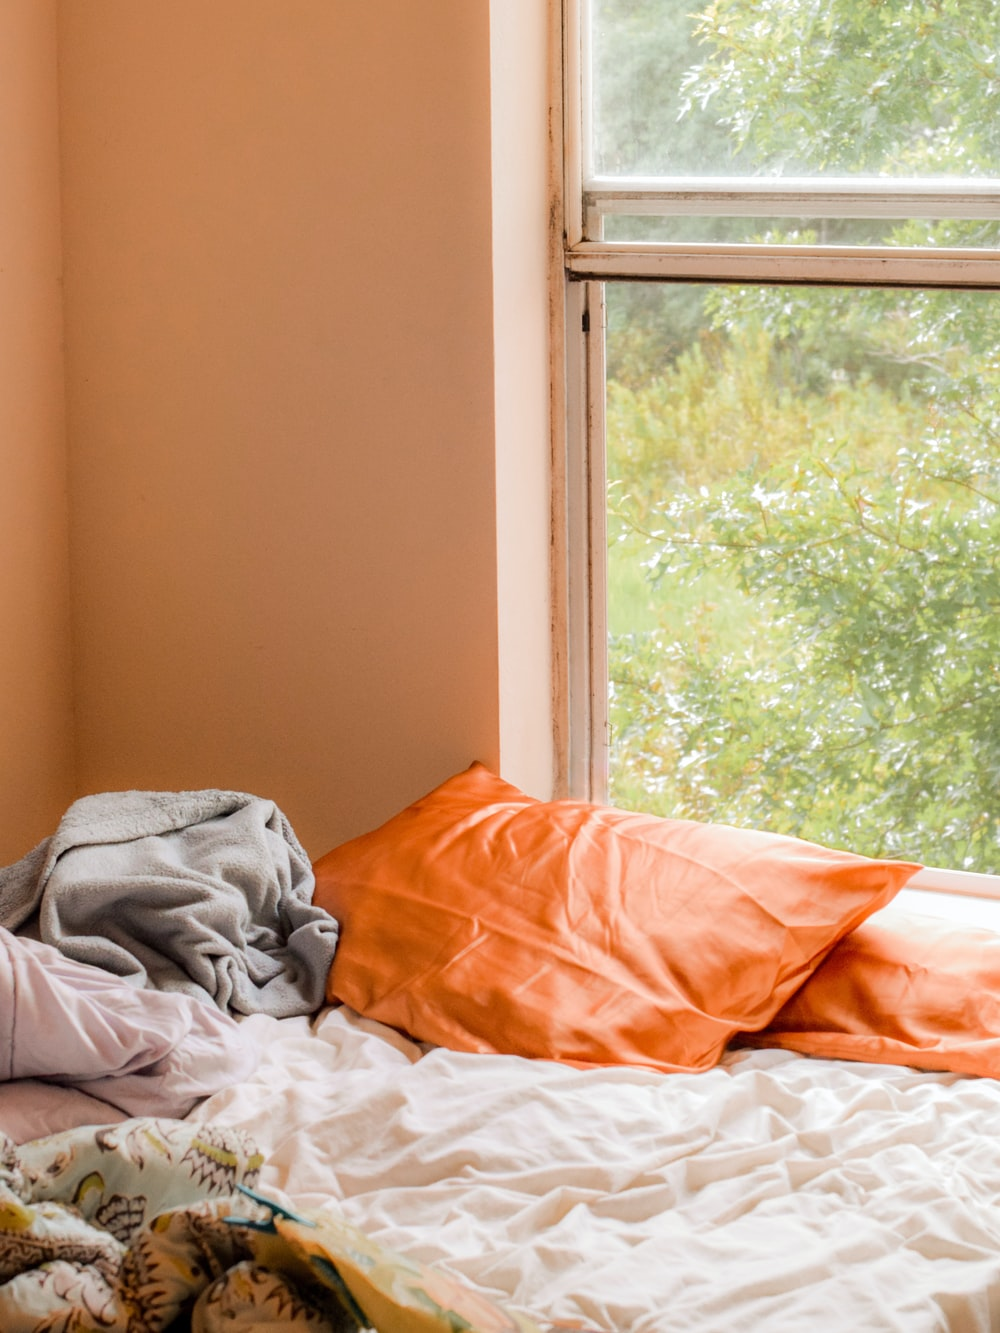 orange pillowcases